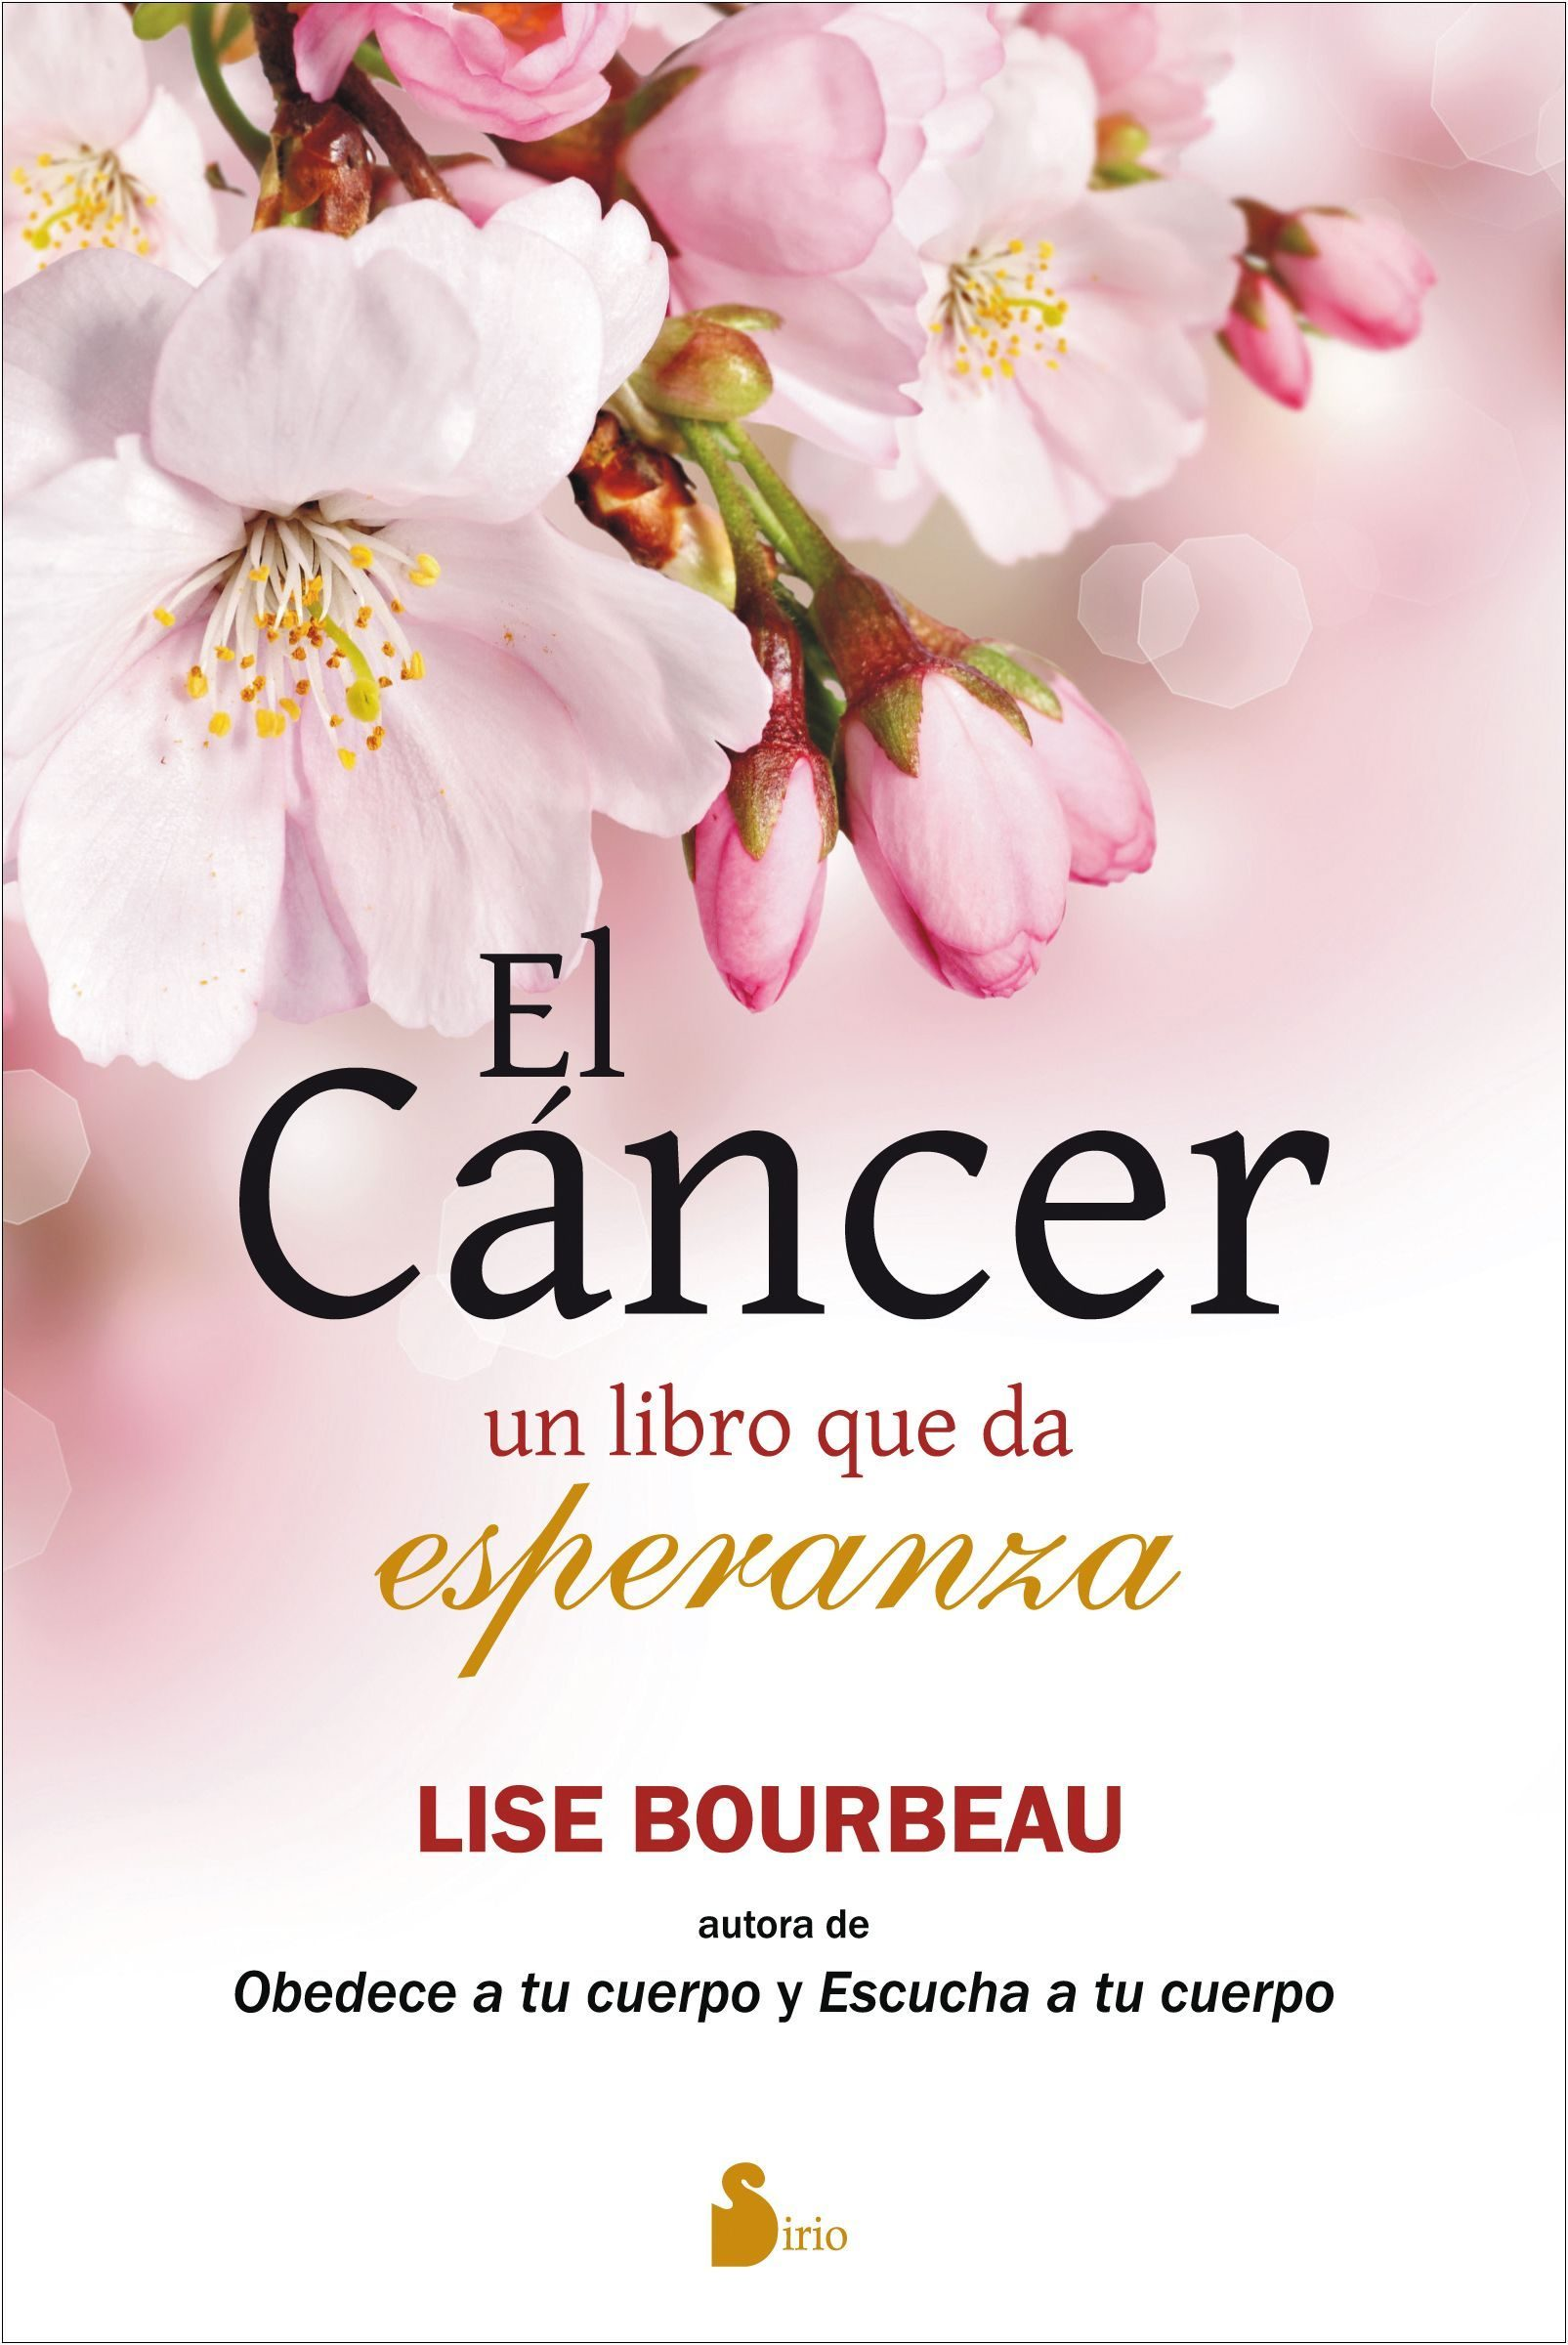 El Cancer por Lise Bourbeau